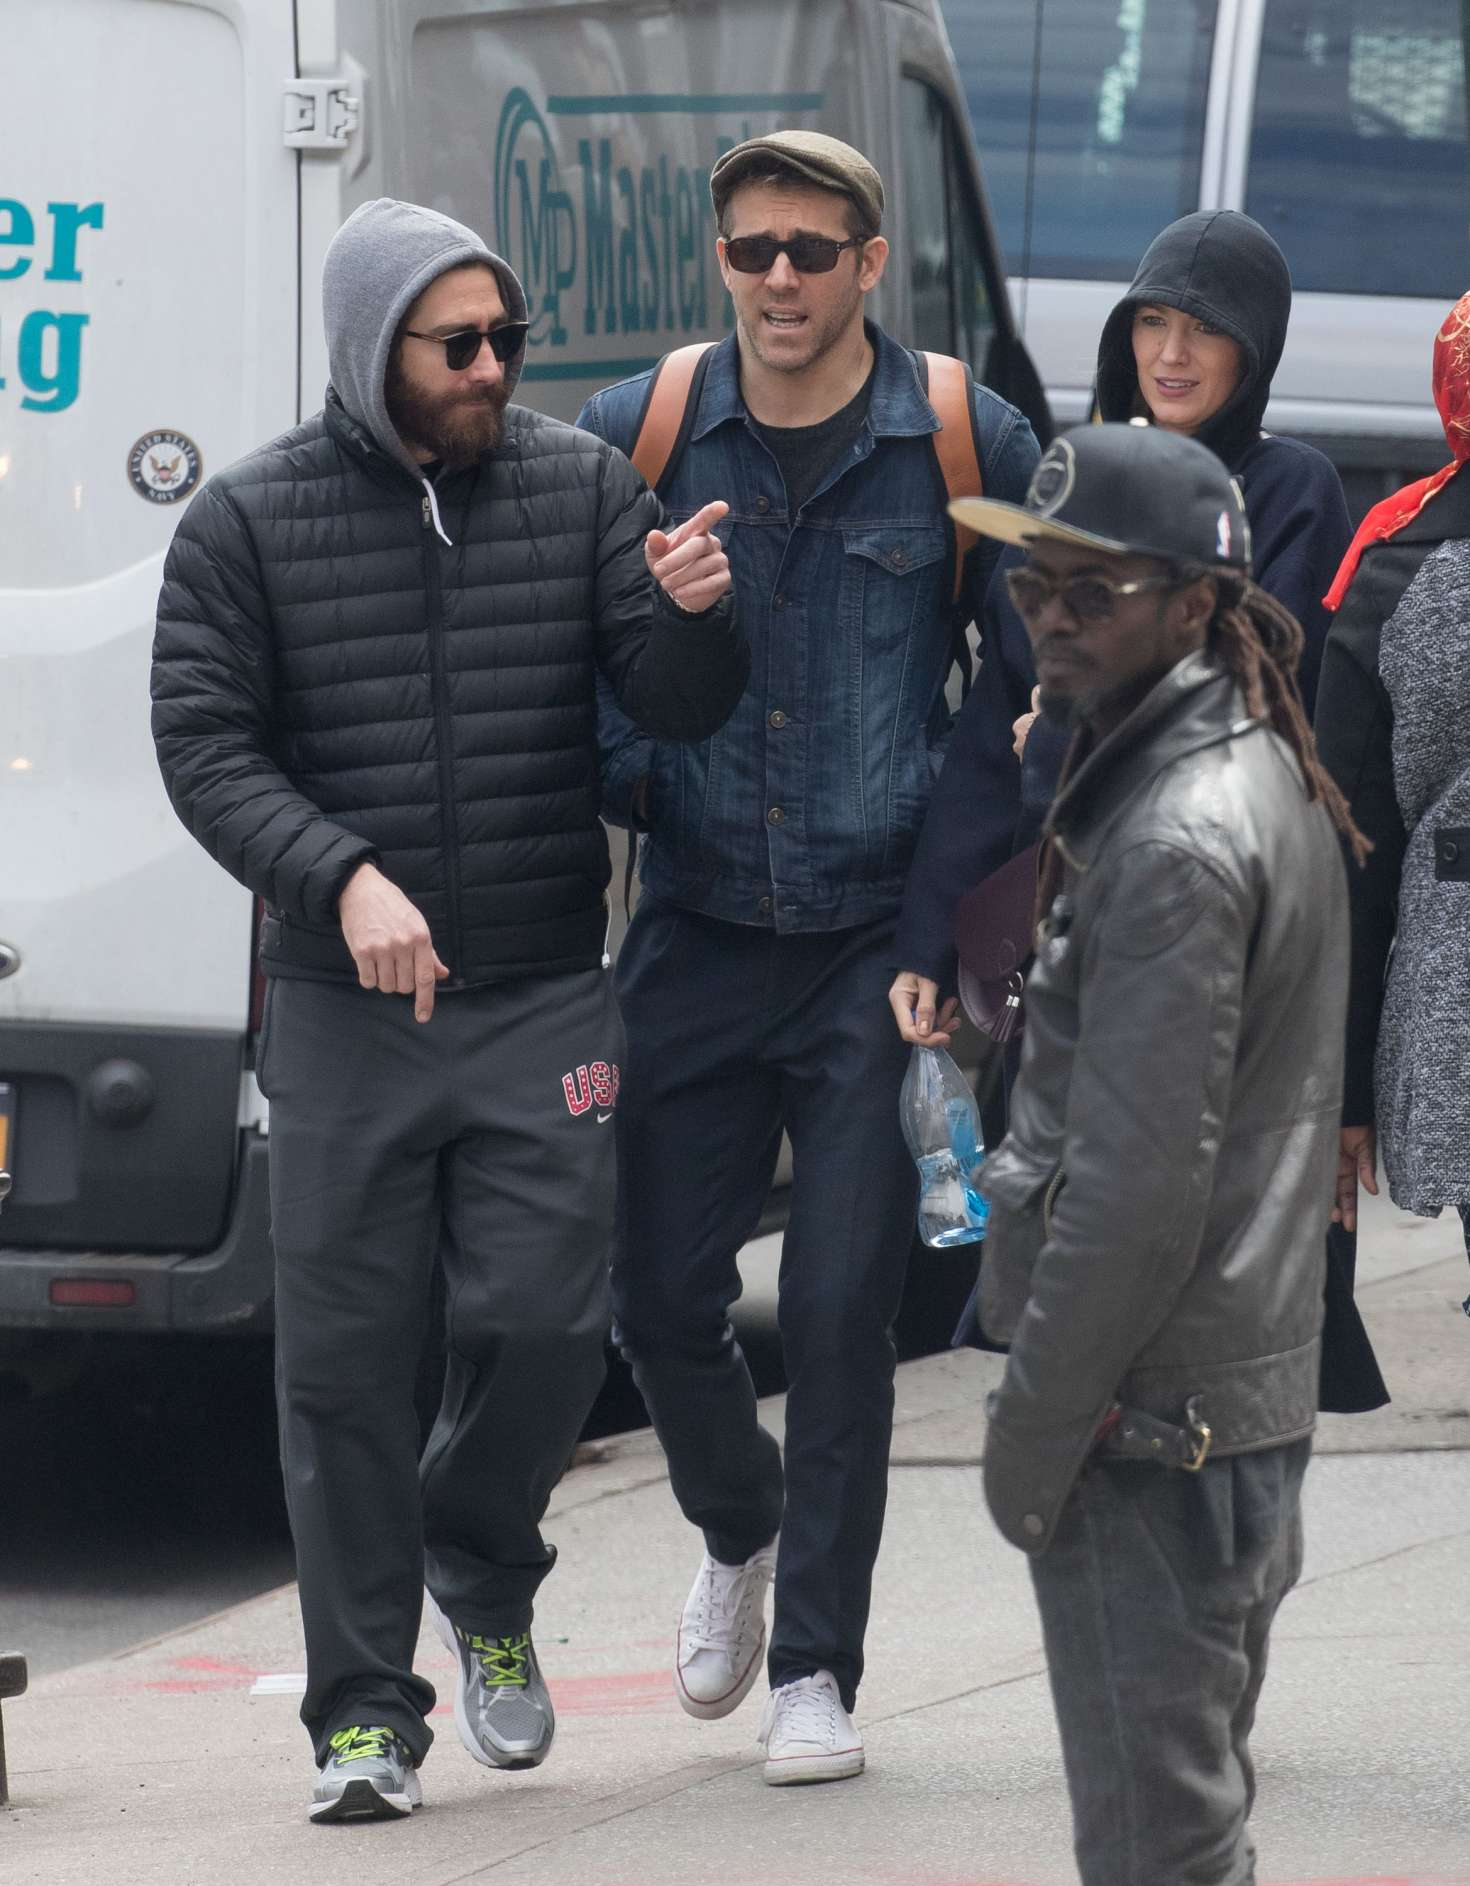 Blake Lively Jake Gyllenhaal And Ryan Reynolds Out In Nyc